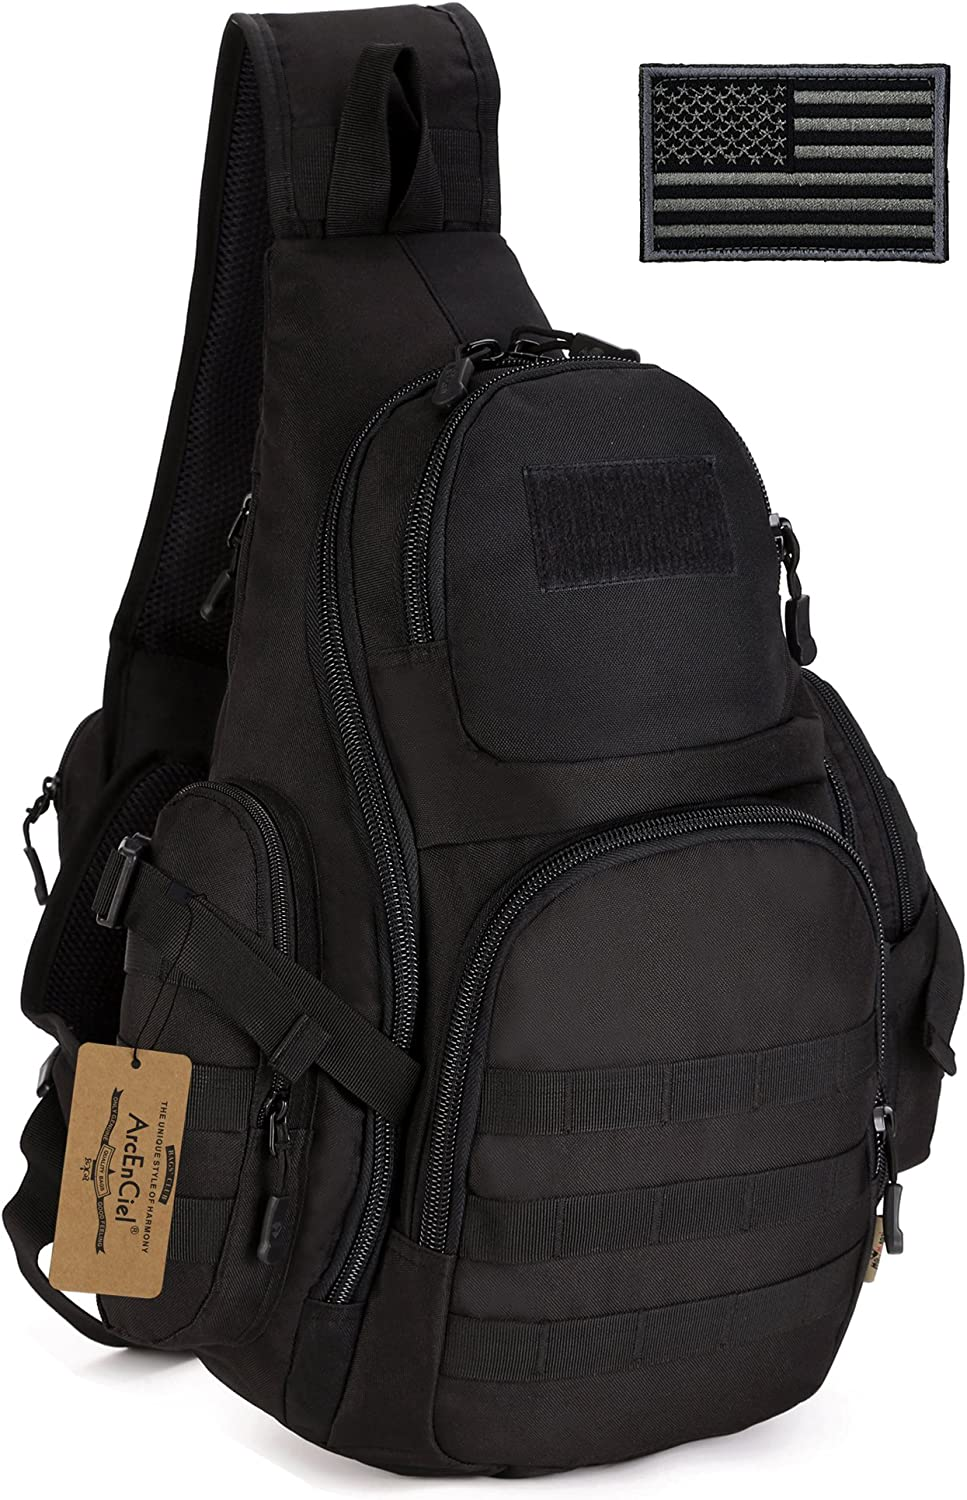 ArcEnCiel Tactical Sling Pack Military Molle Chest Crossbody Shoulder Bags with Patch